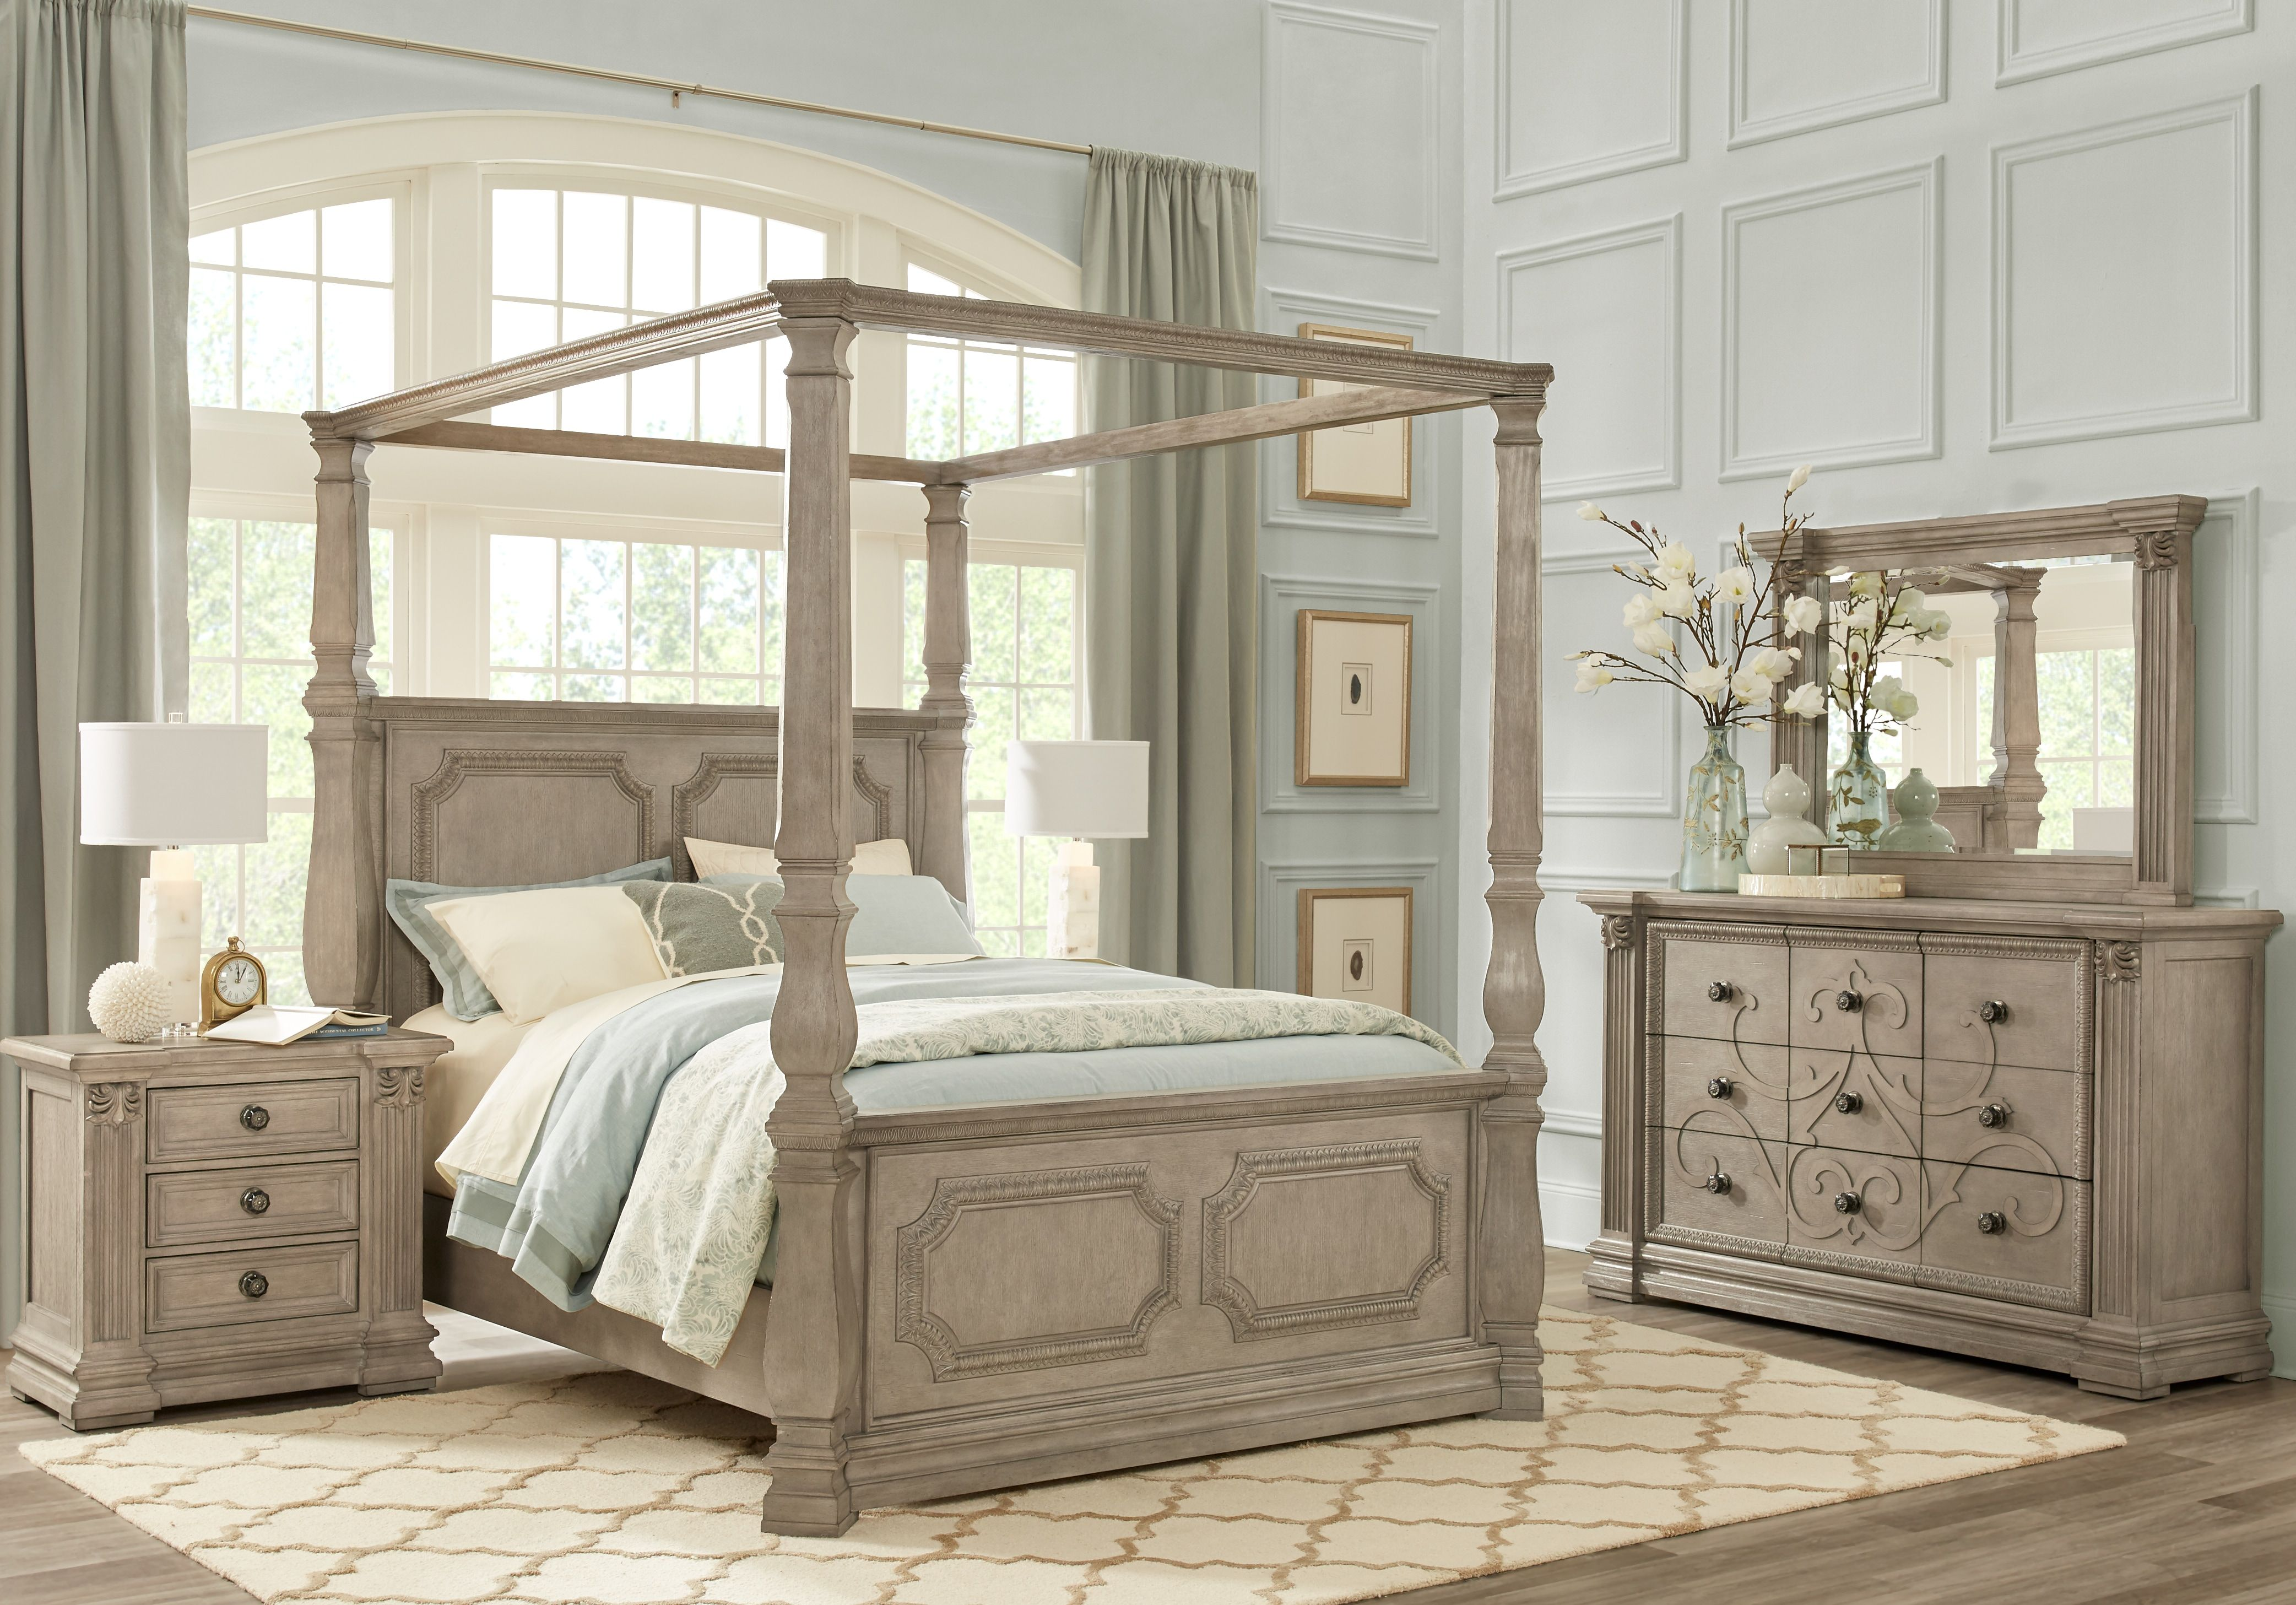 Havencrest Gray 9 Pc King Canopy Bedroom Canopy Bedroom Sets